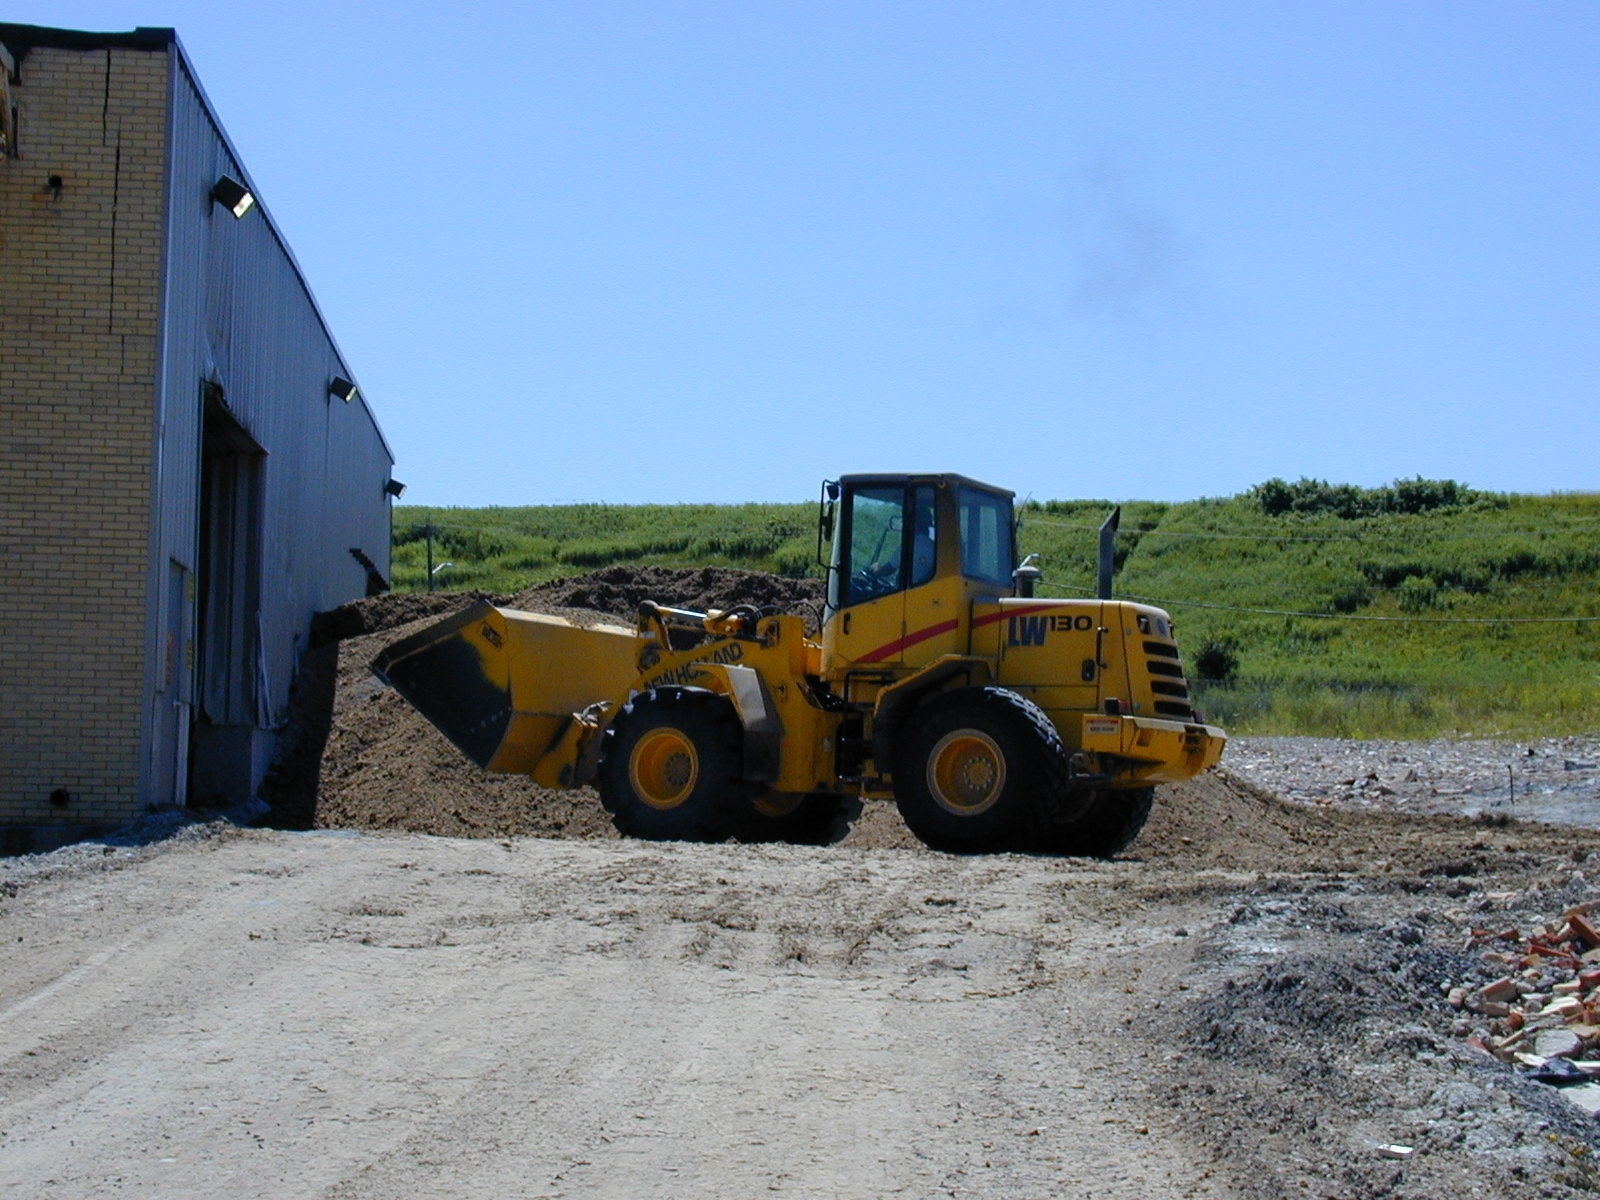 Figure 2 - Payloader that was involved in the incident